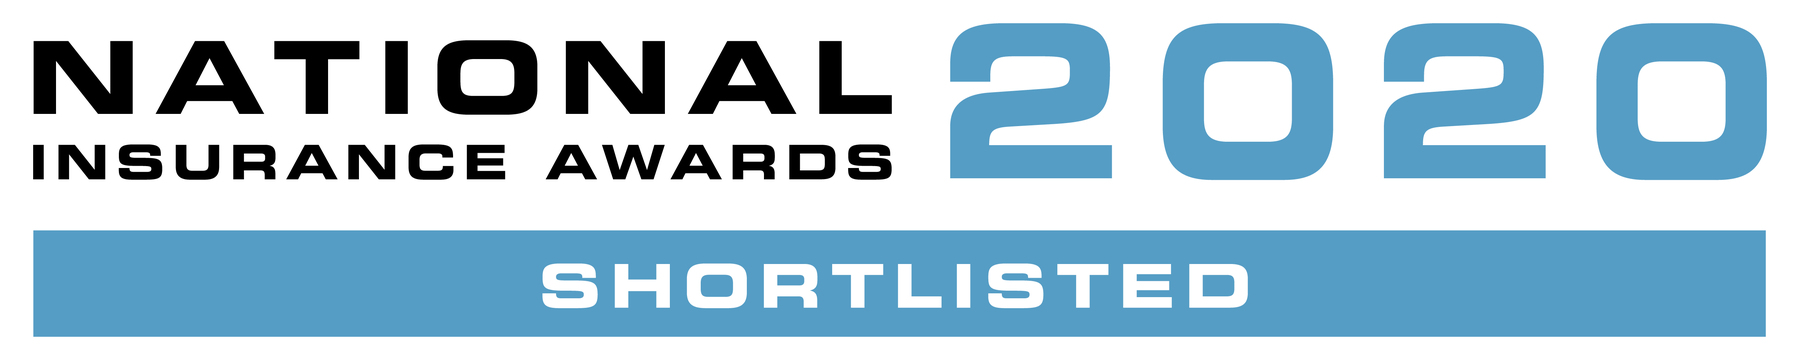 Hamilton Fraser Total Landlord Insurance is shortlisted in the National Insurance Awards 2020